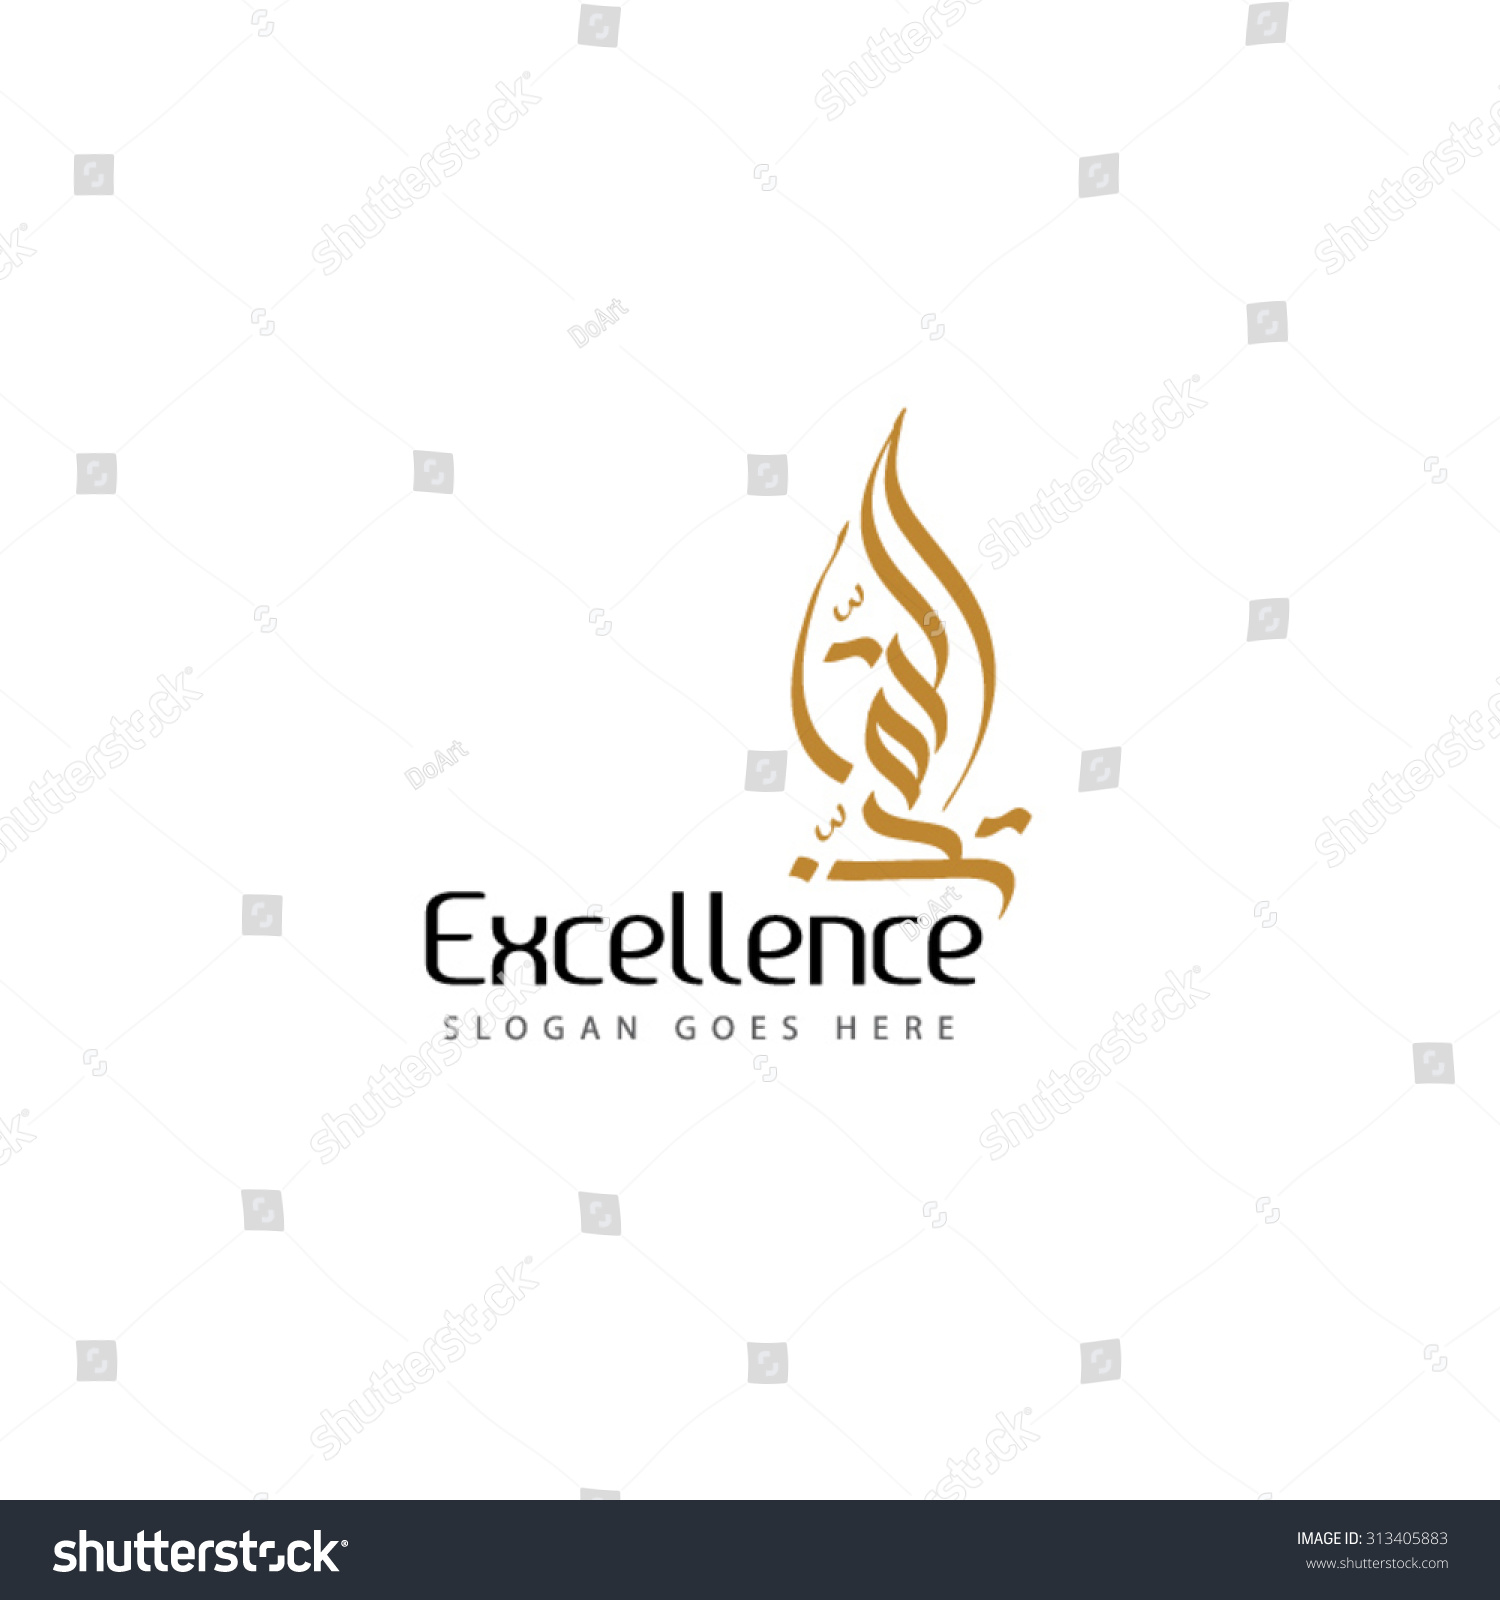 Excellence logo illustrator file created by stock vector